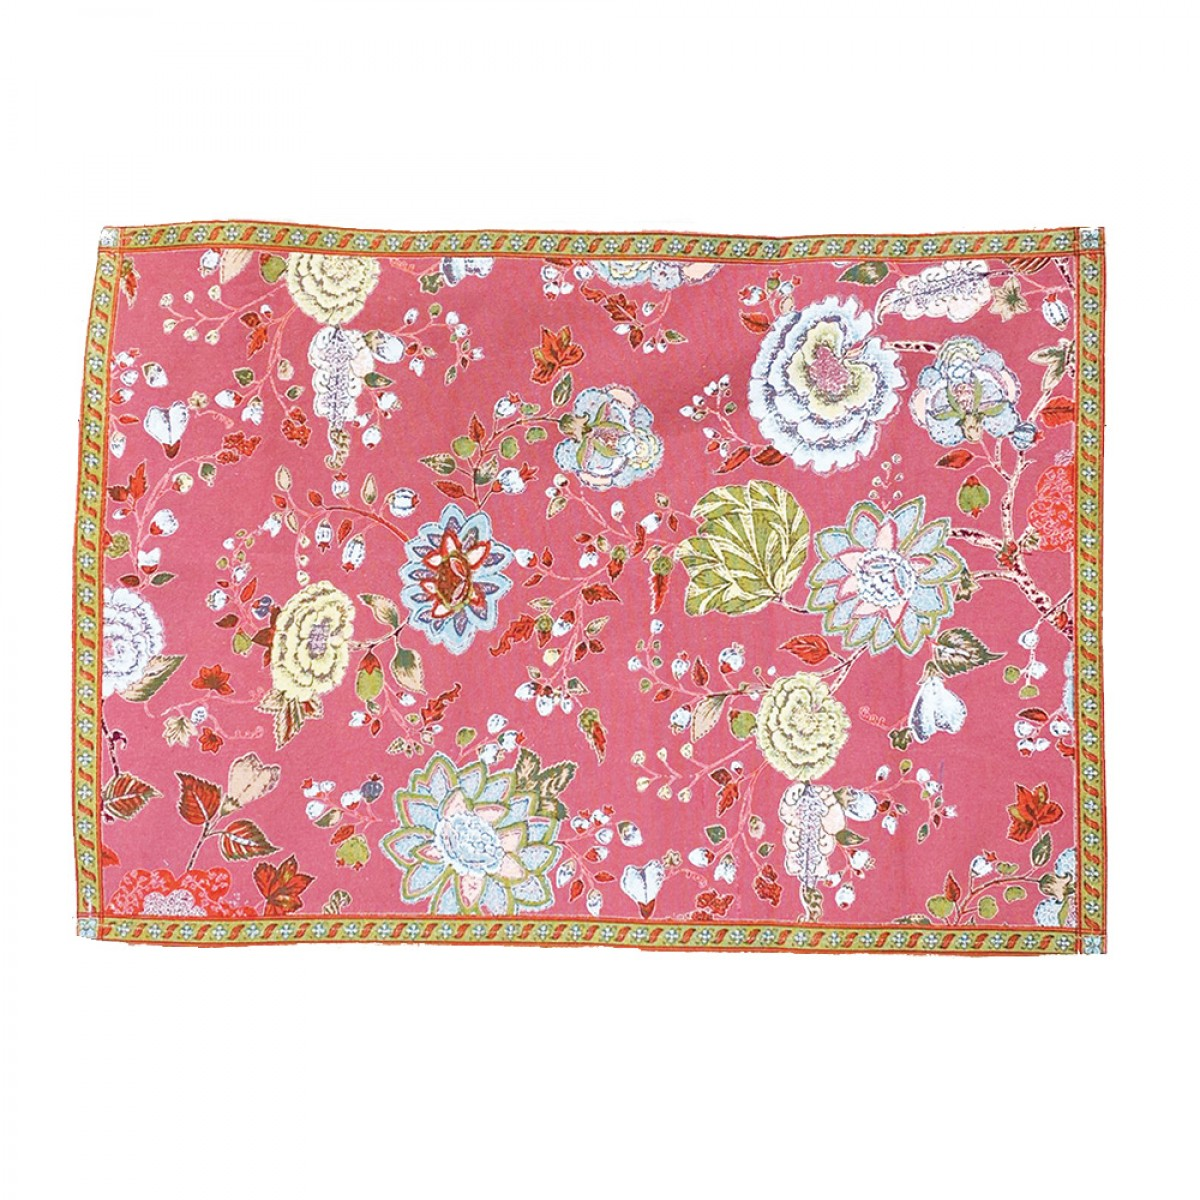 Table Mats - Pink (set of 6)